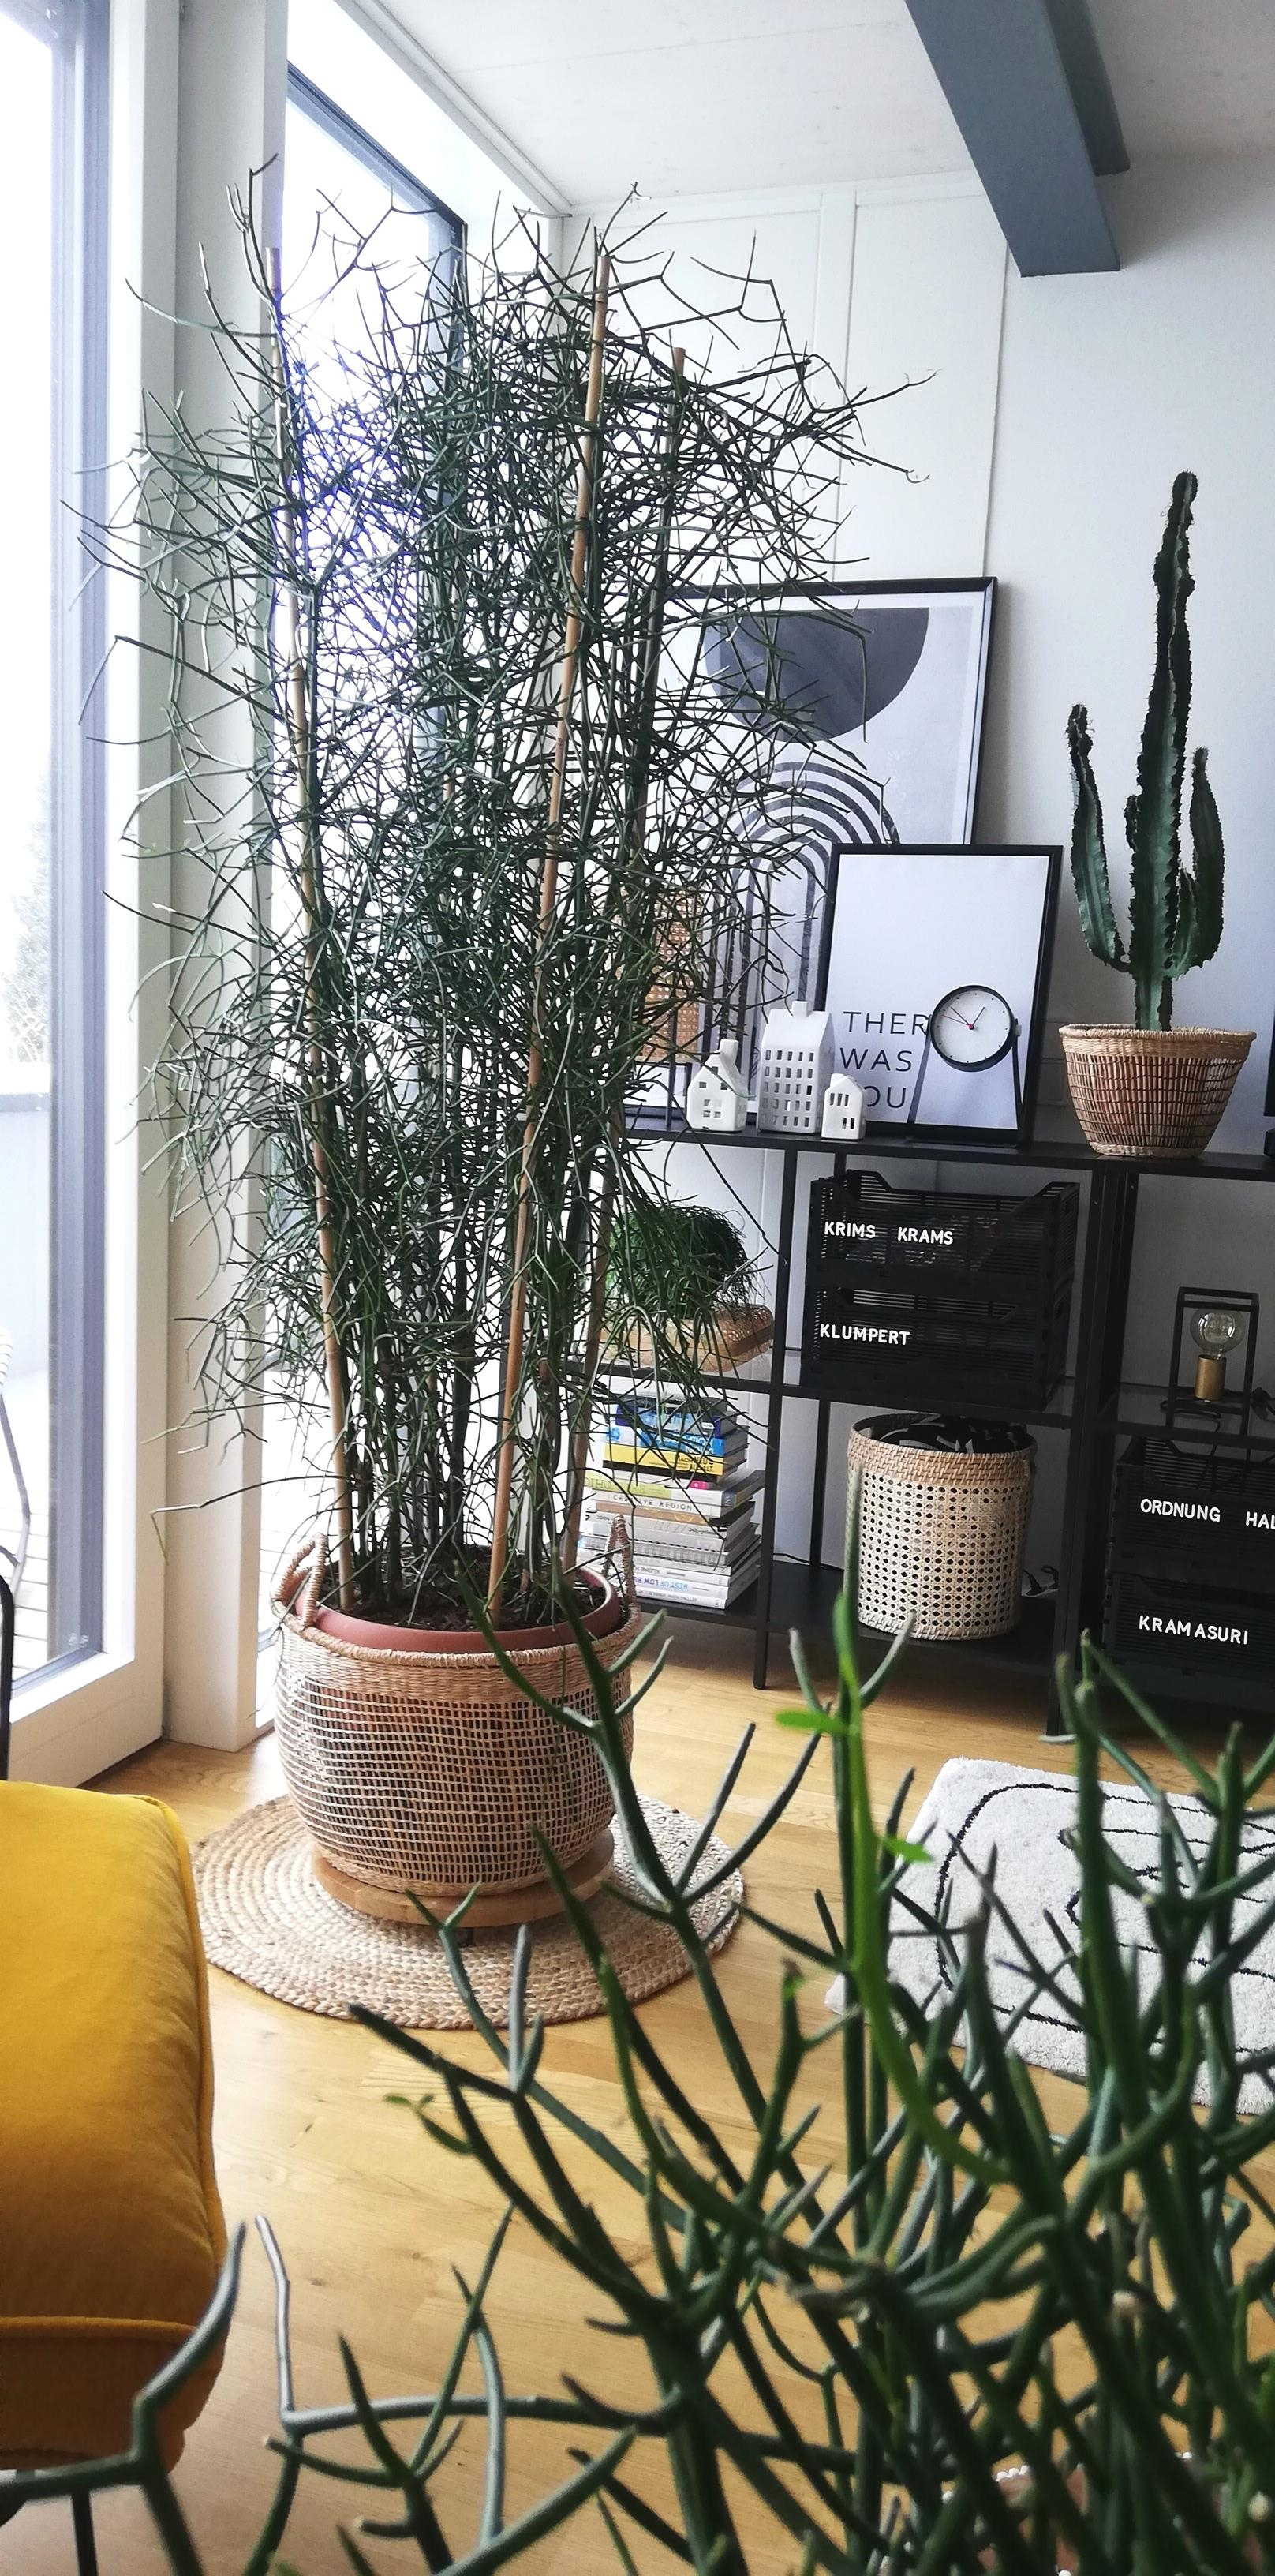 #plantslover #plants #modernliving #modernepflanzen #bleistiftbaum #nature #home #decor #decoration #zimmerpflanze #love